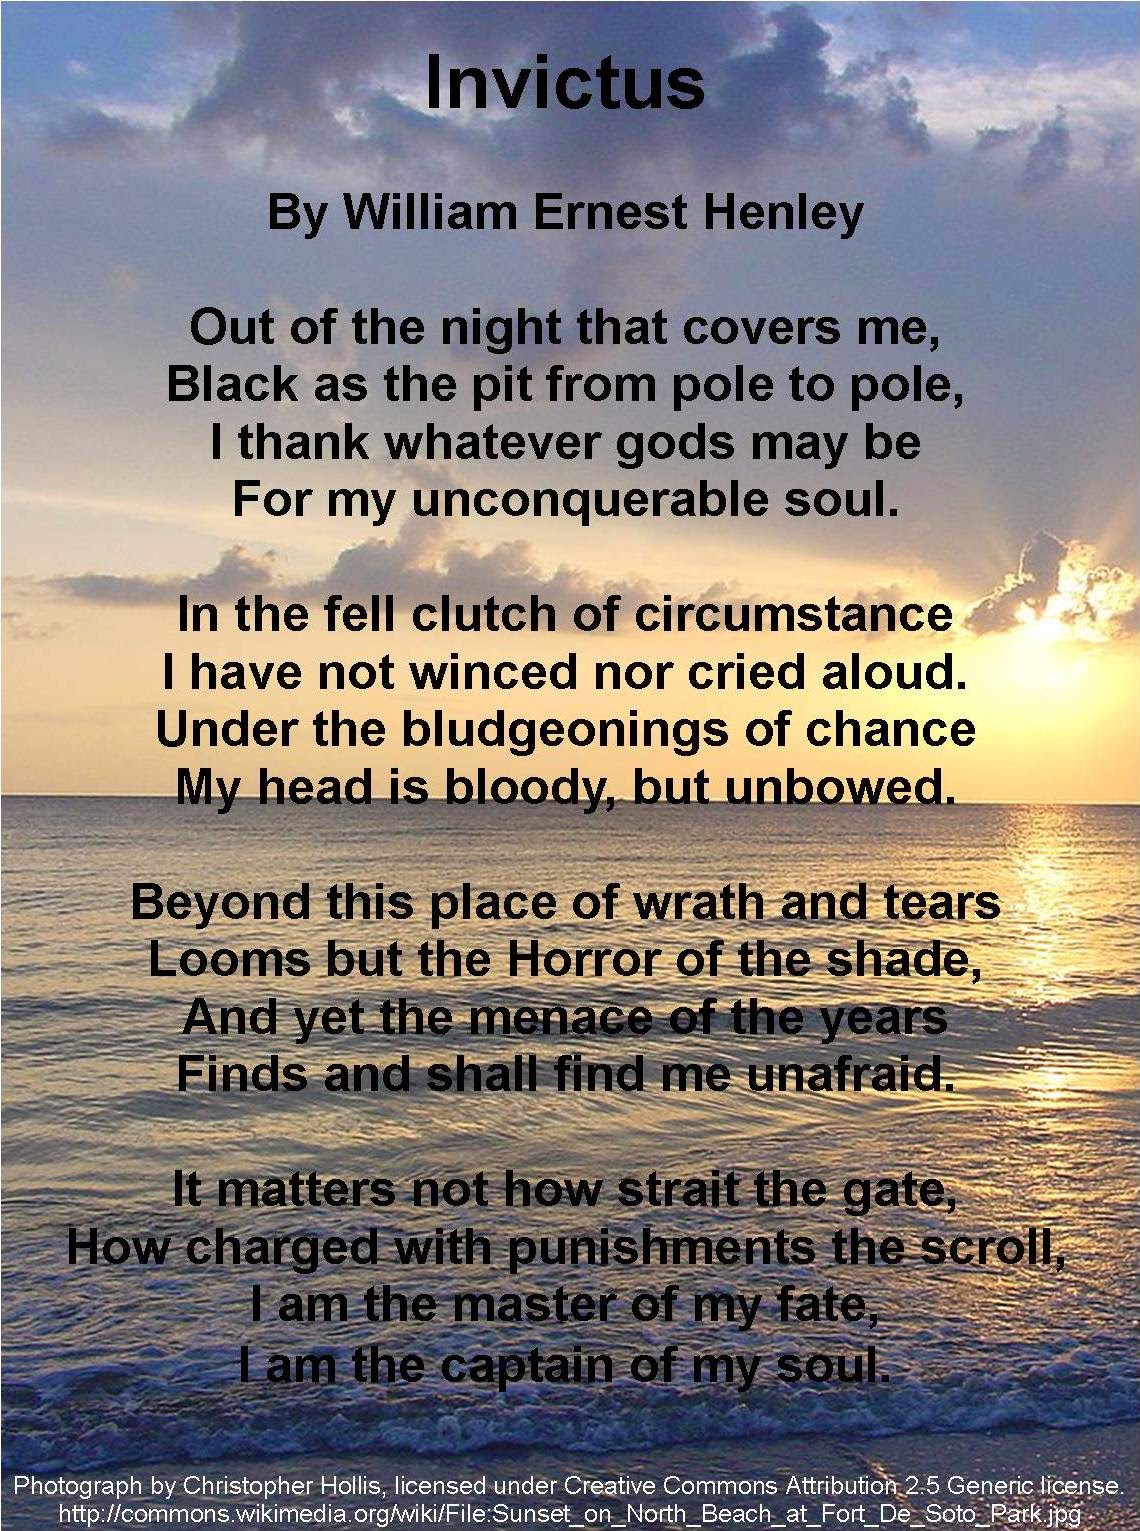 invictus william ernest henley means